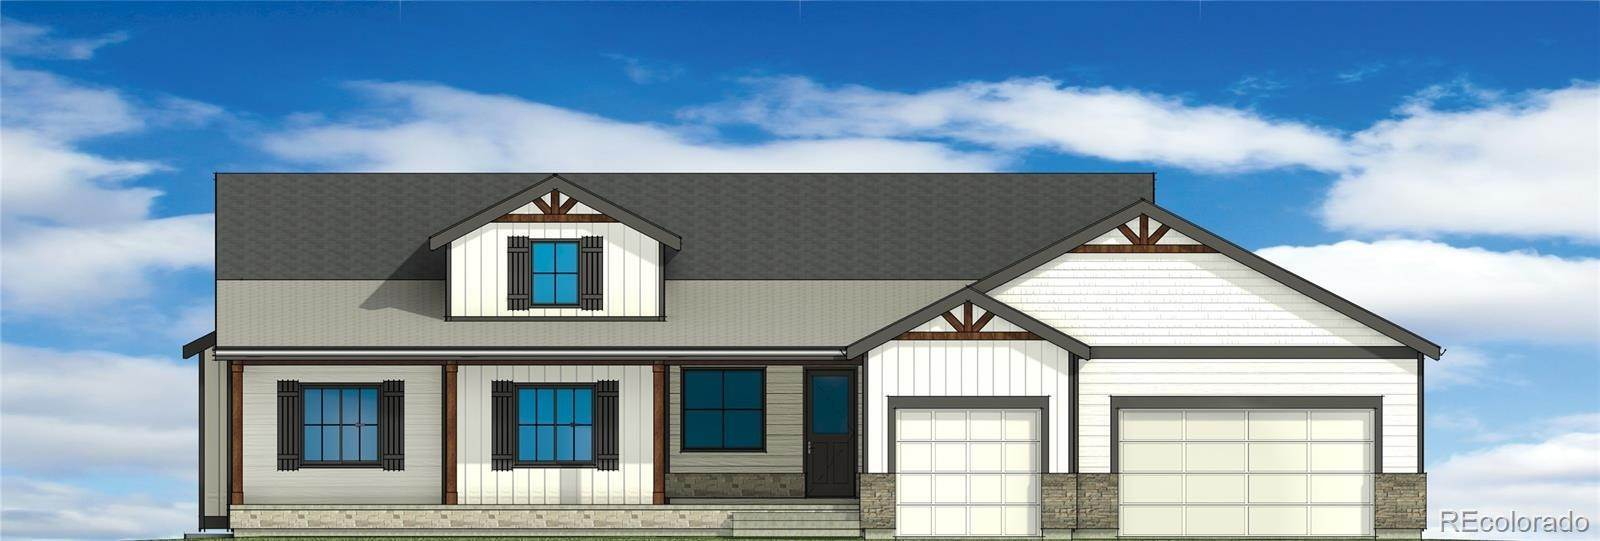 Single Family Homes for Sale at 9251 Meadow Farms Drive Milliken, Colorado 80543 United States